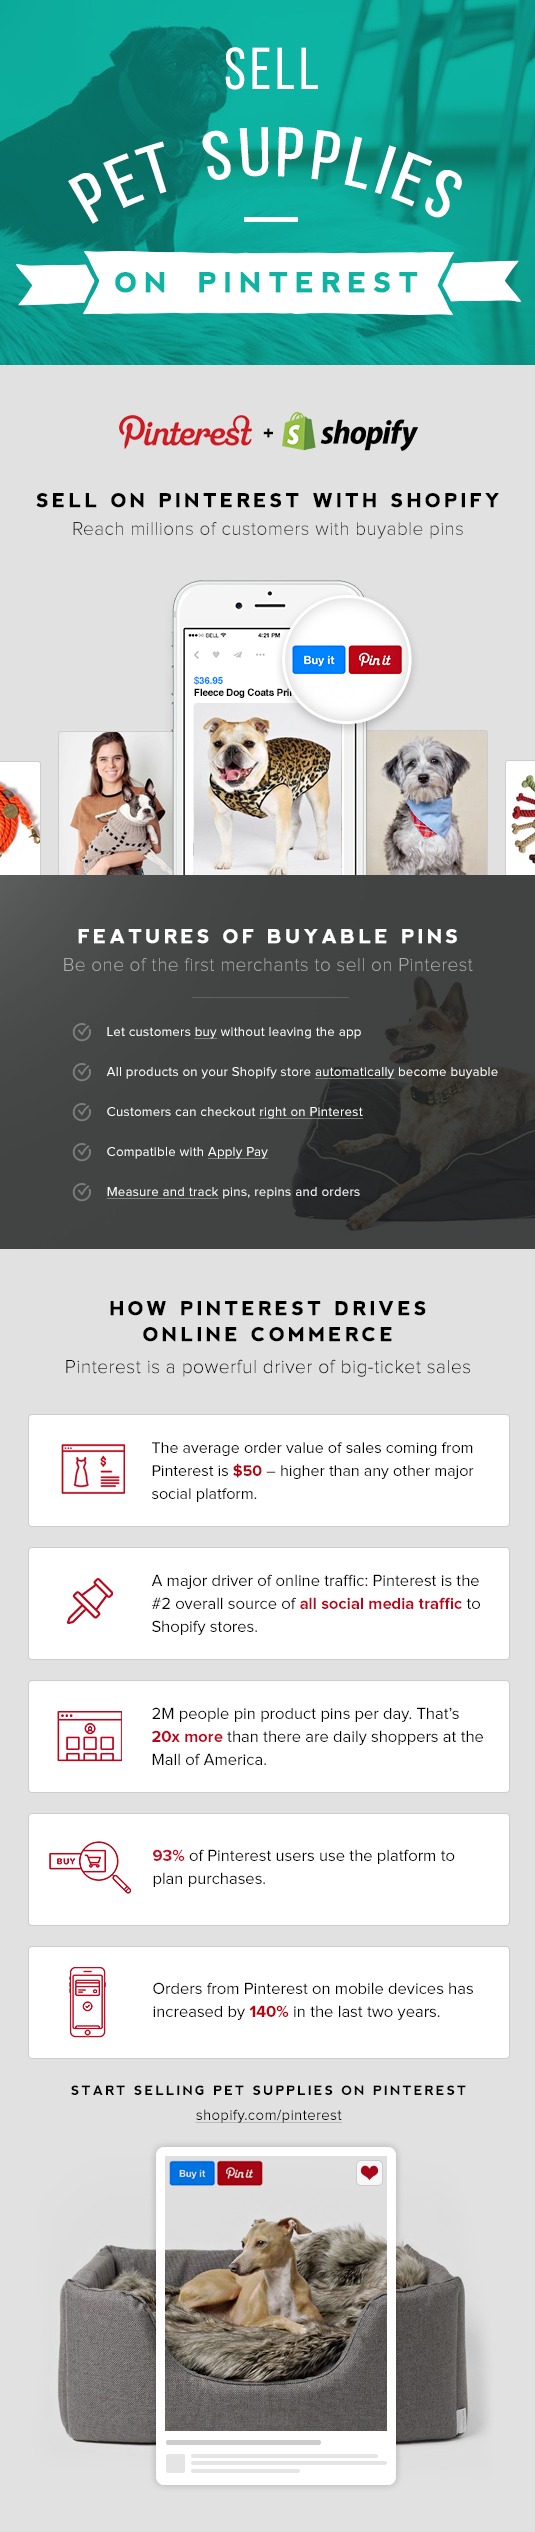 Sell pet supplies on Pinterest with Buyable Pins | Buyable Pins ...